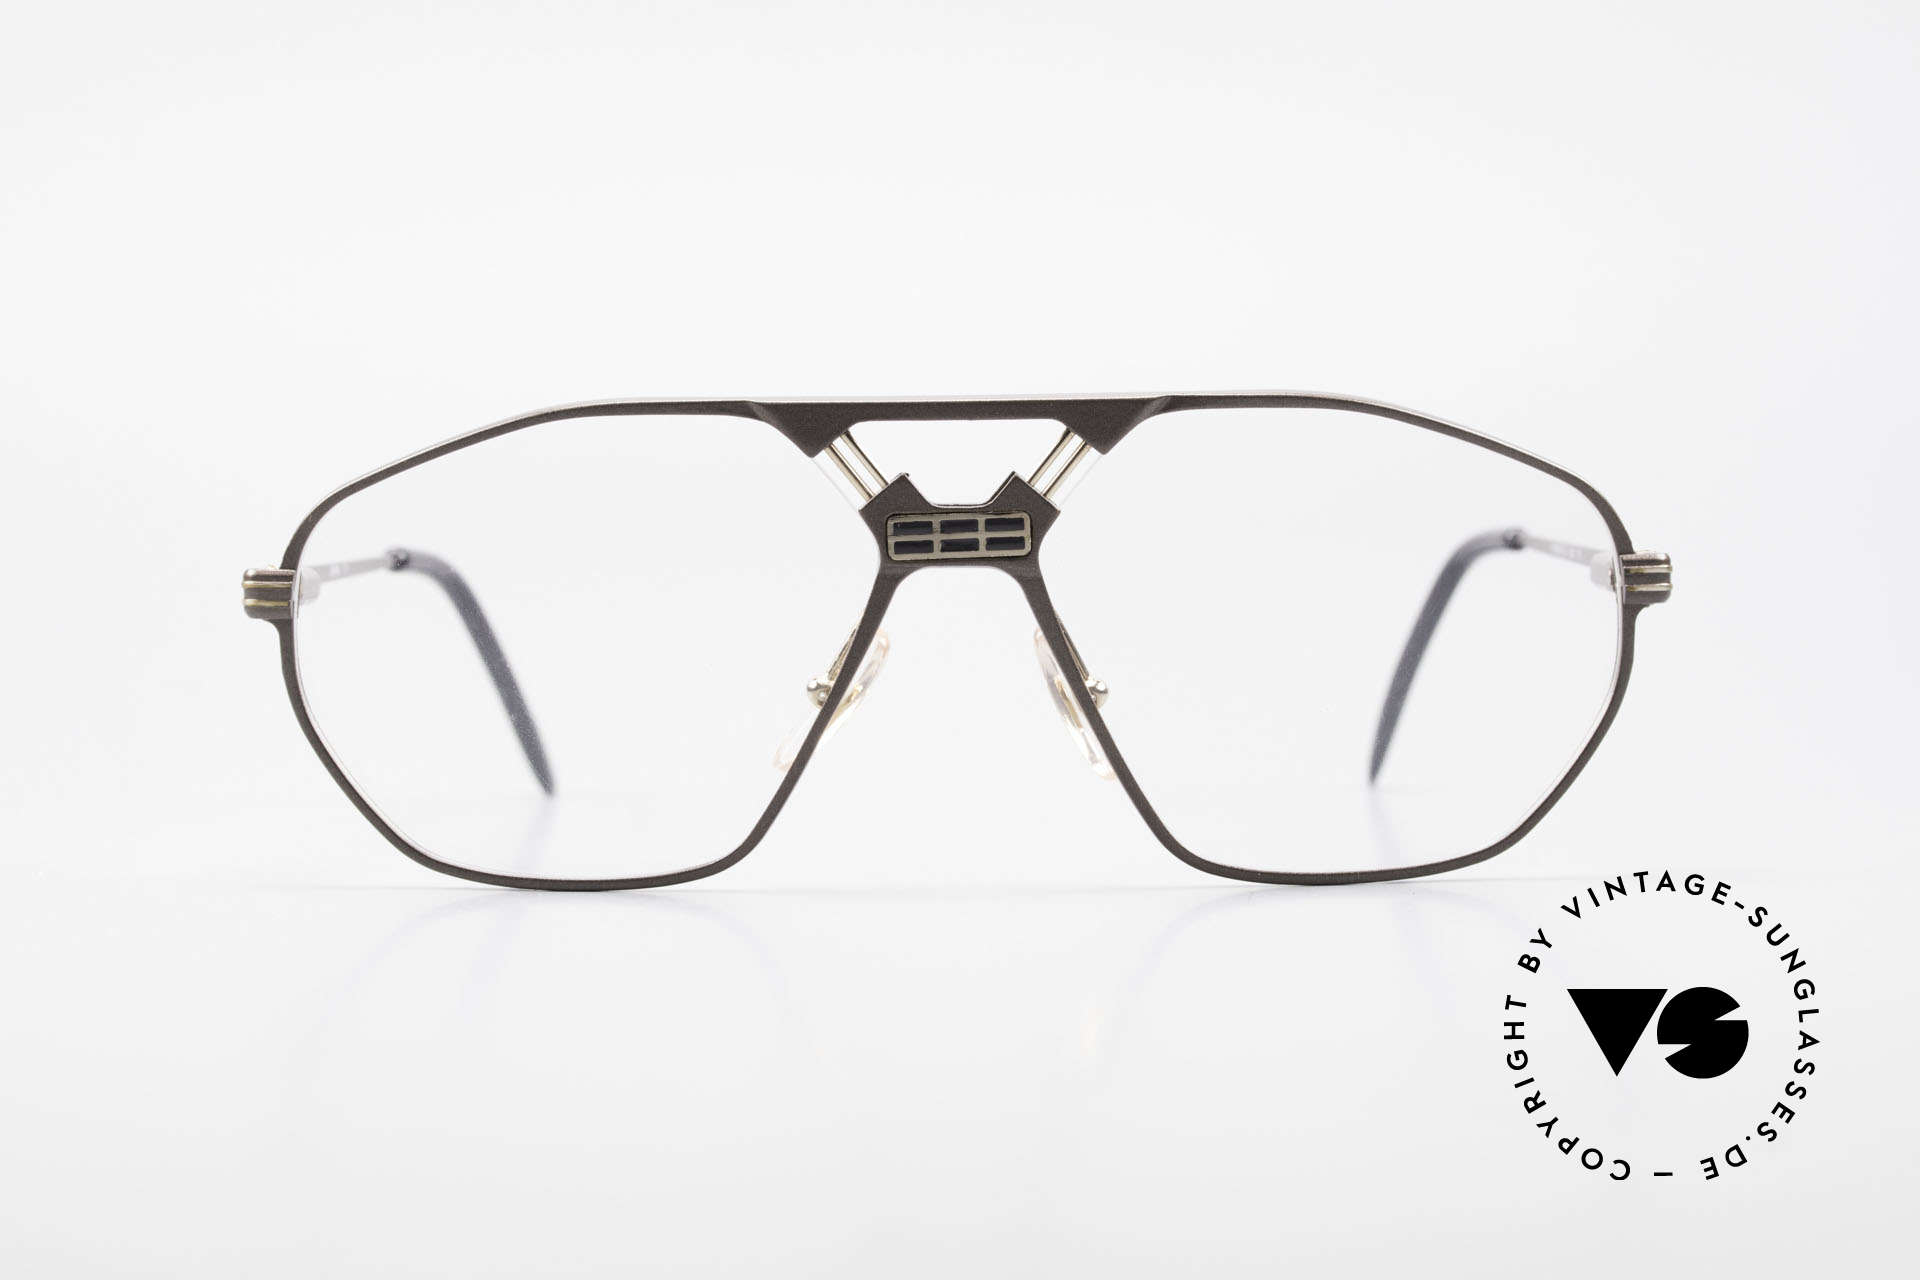 Ferrari F22 90's Formula 1 Vintage Glasses, striking frame construction (very interesting bridge), Made for Men